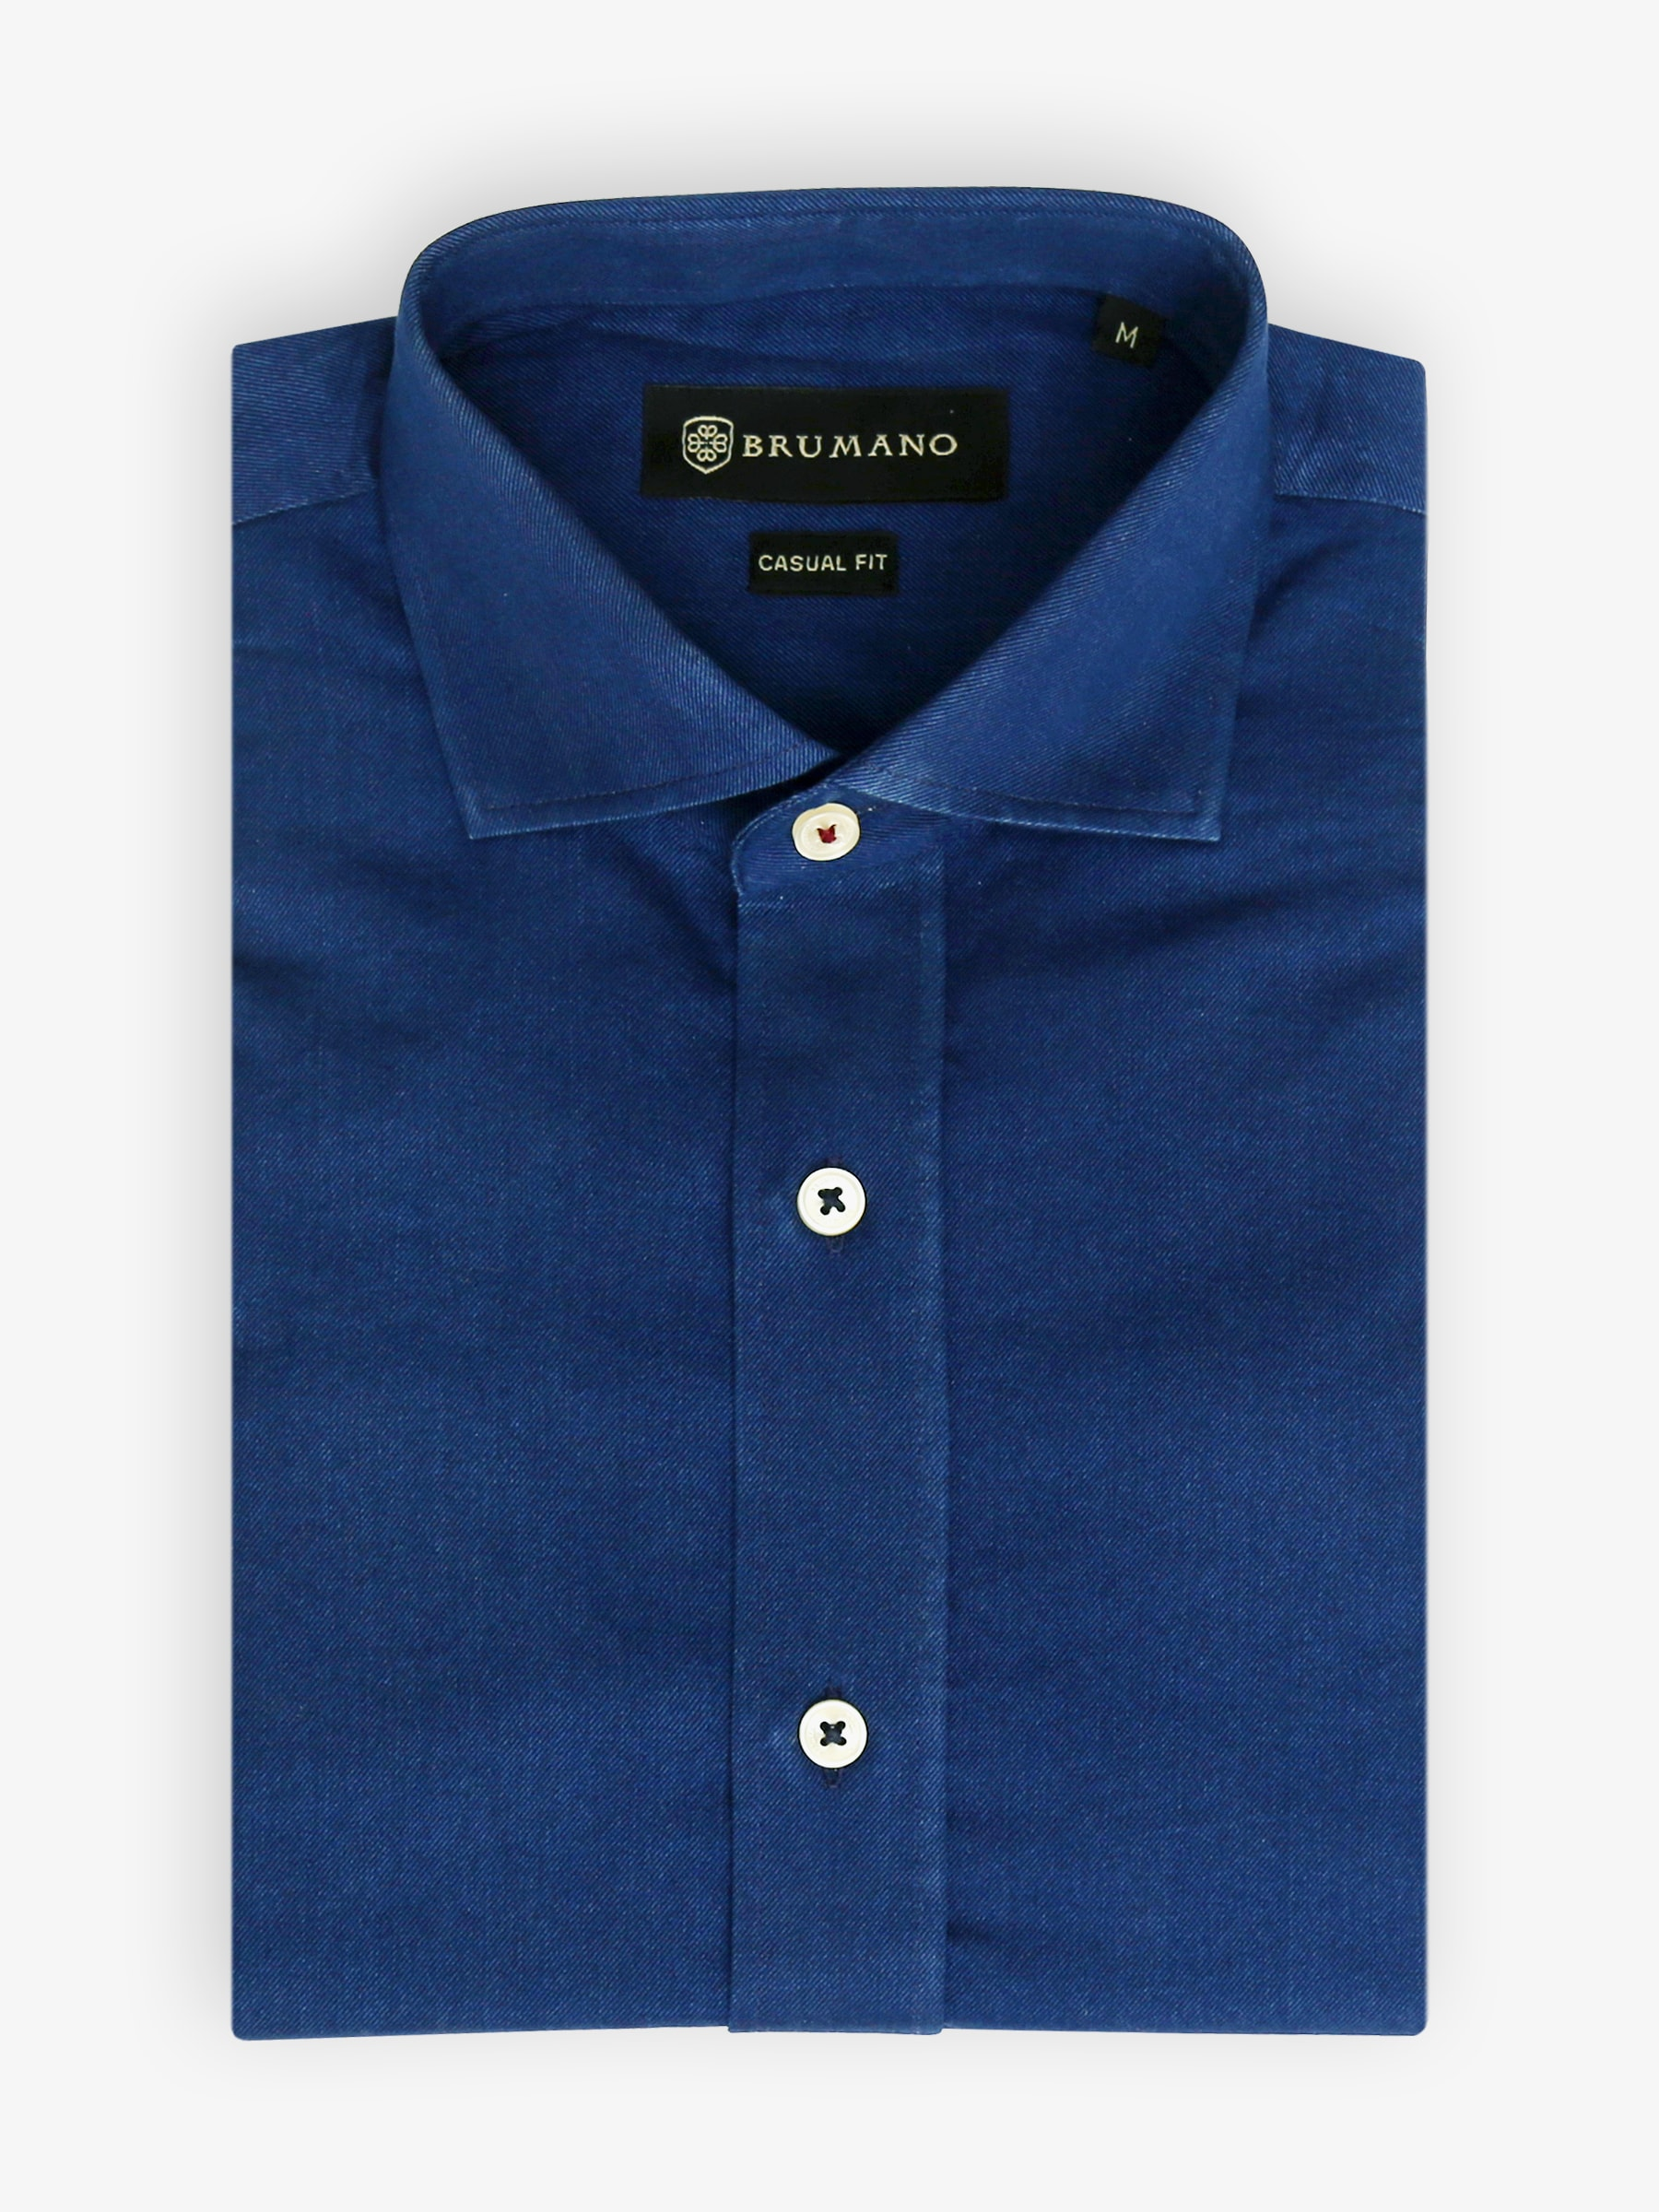 Cutaway Collar | Collared Shirts for Men | Types of Button Down Shirts